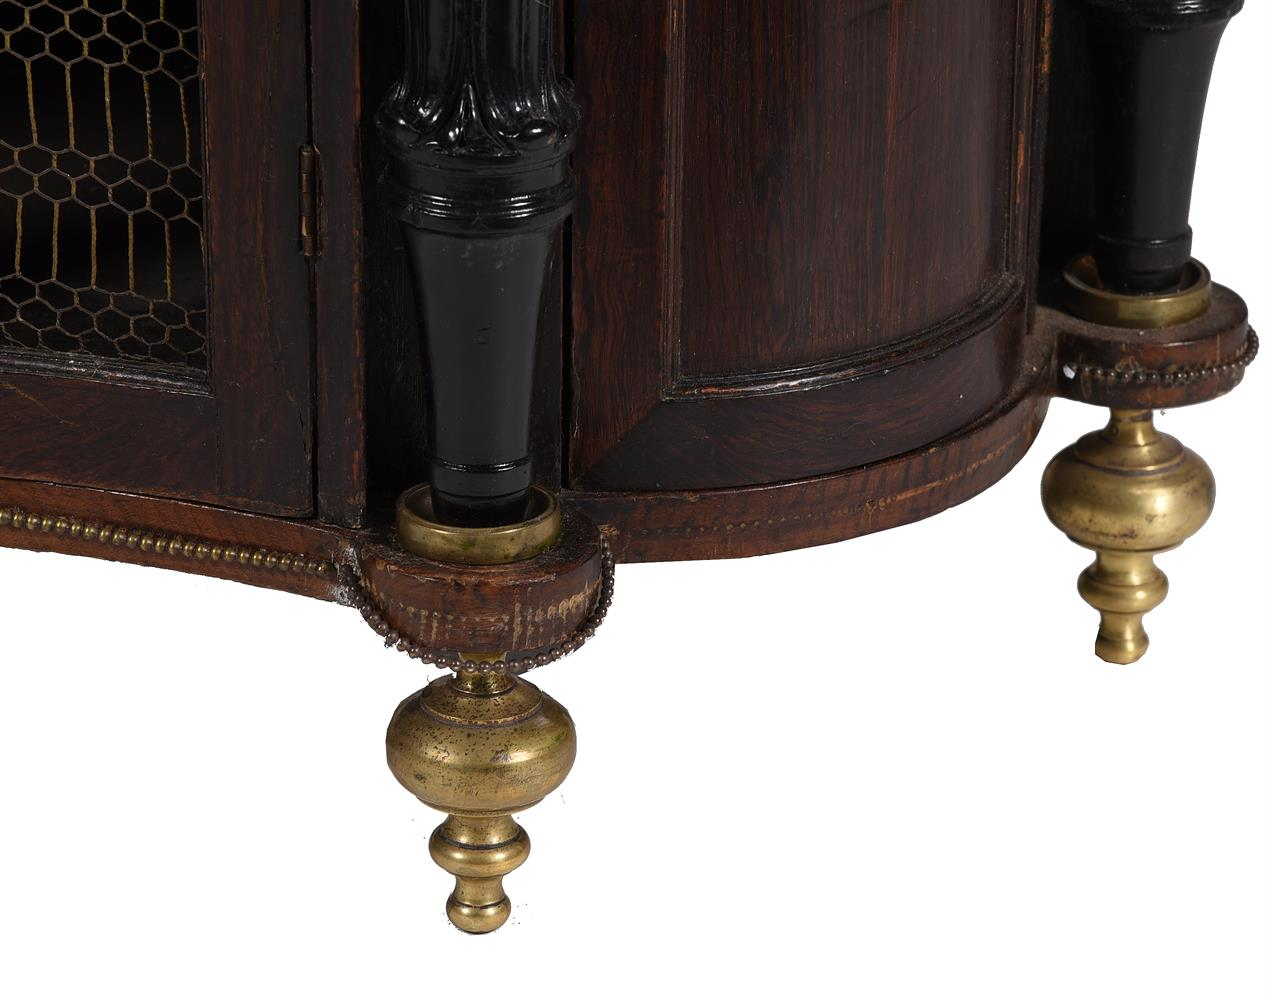 A REGENCY SIMULATED ROSEWOOD, EBONISED AND GILT METAL MOUNTED SIDE CABINET, CIRCA 1820 - Image 3 of 4